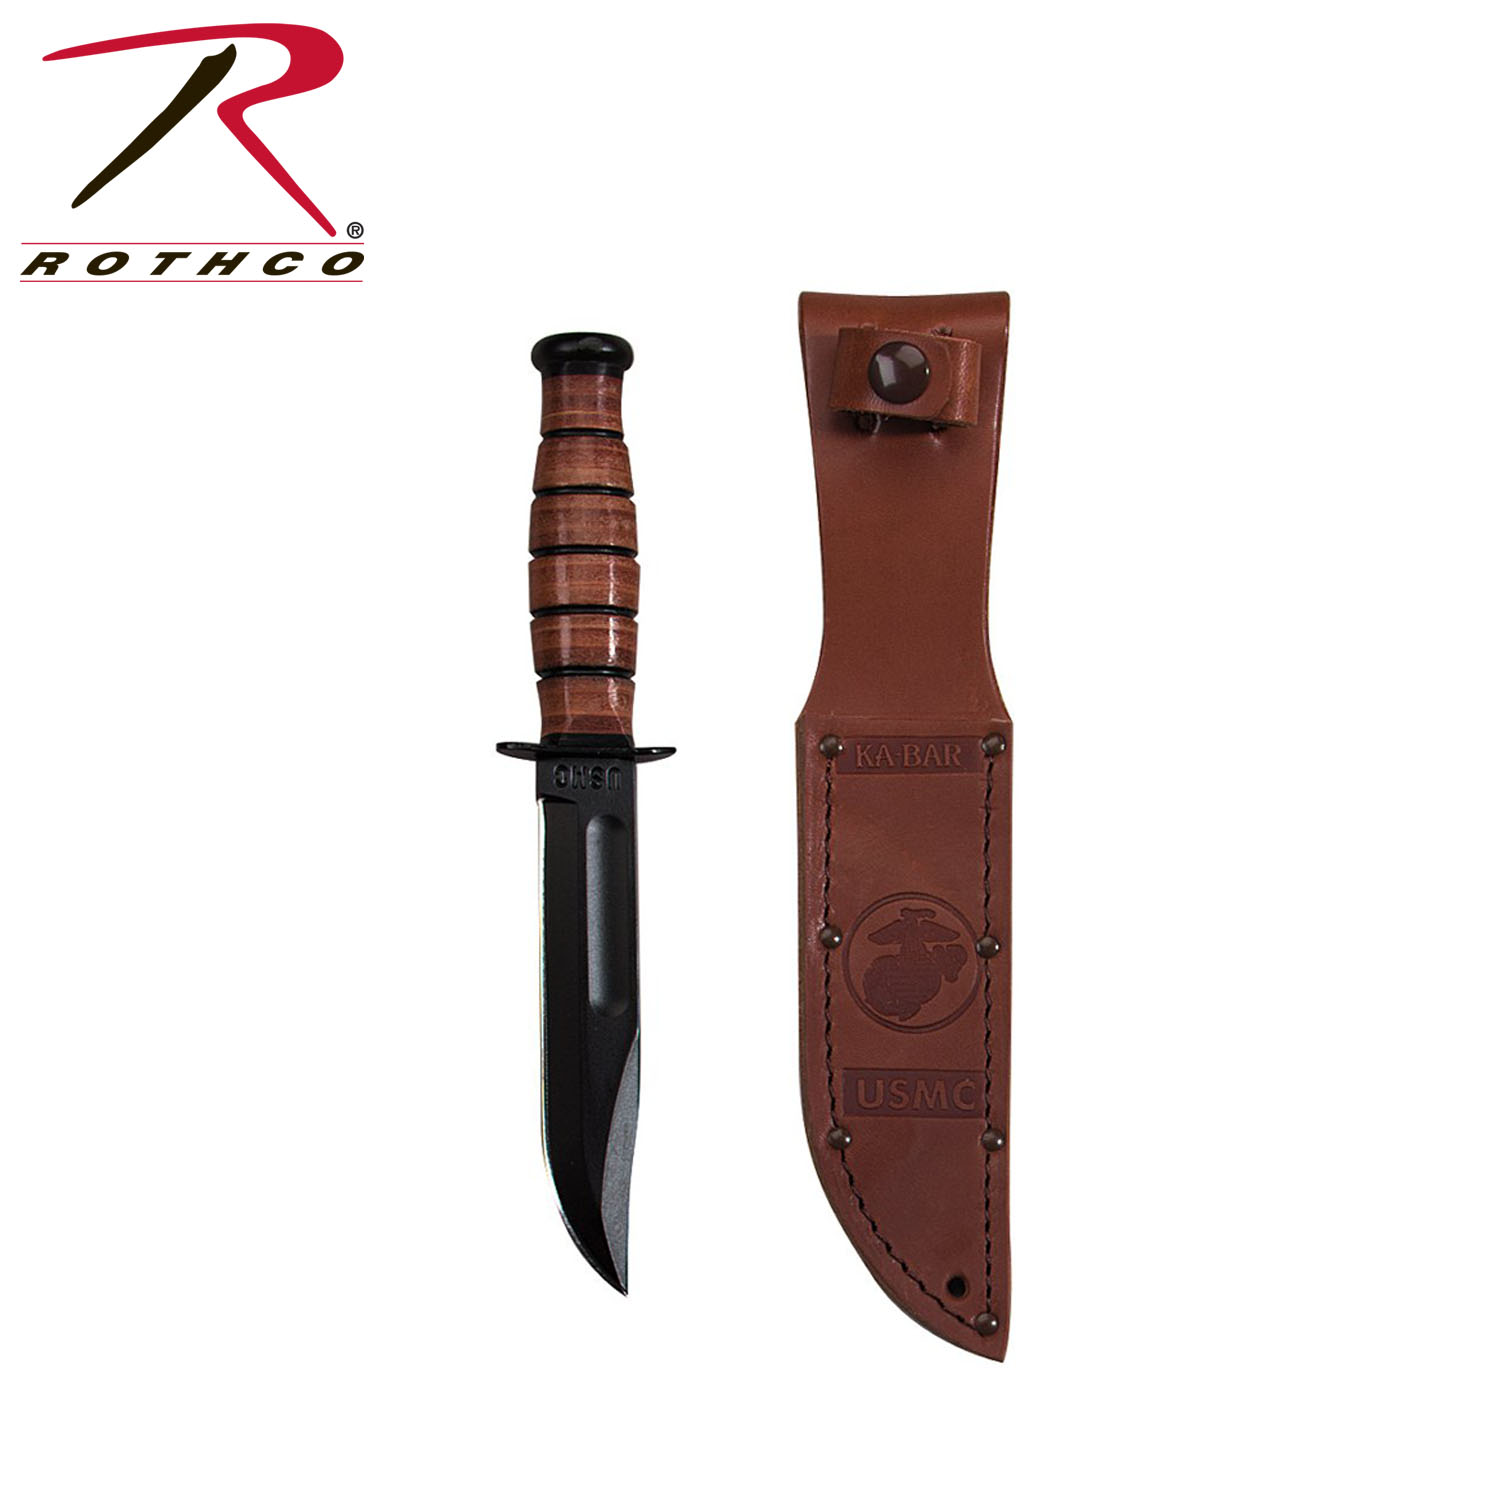 Shorty Ka-bar USMC Fighting Knife